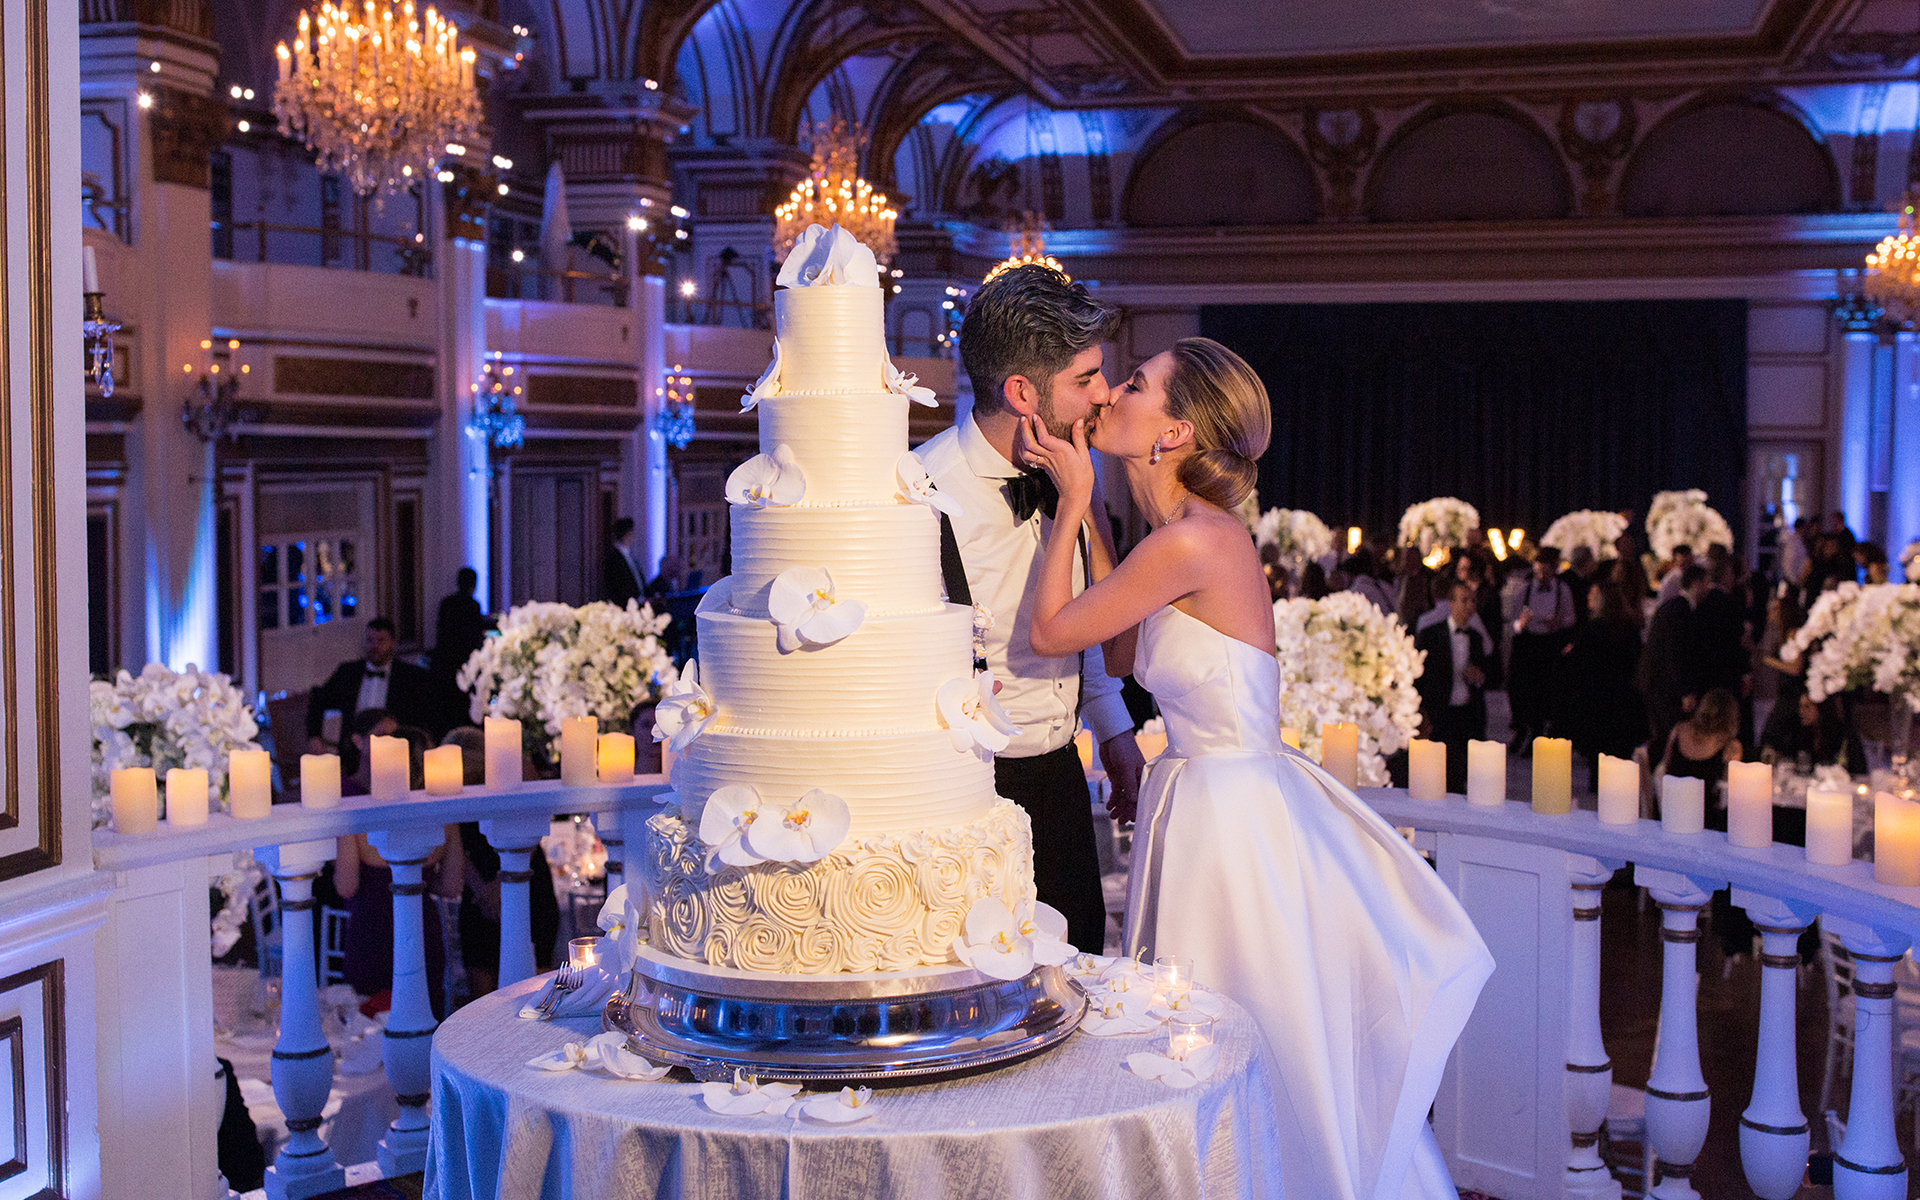 couple cuts their wedding cake at the fairmont copley plaza hotel in boston